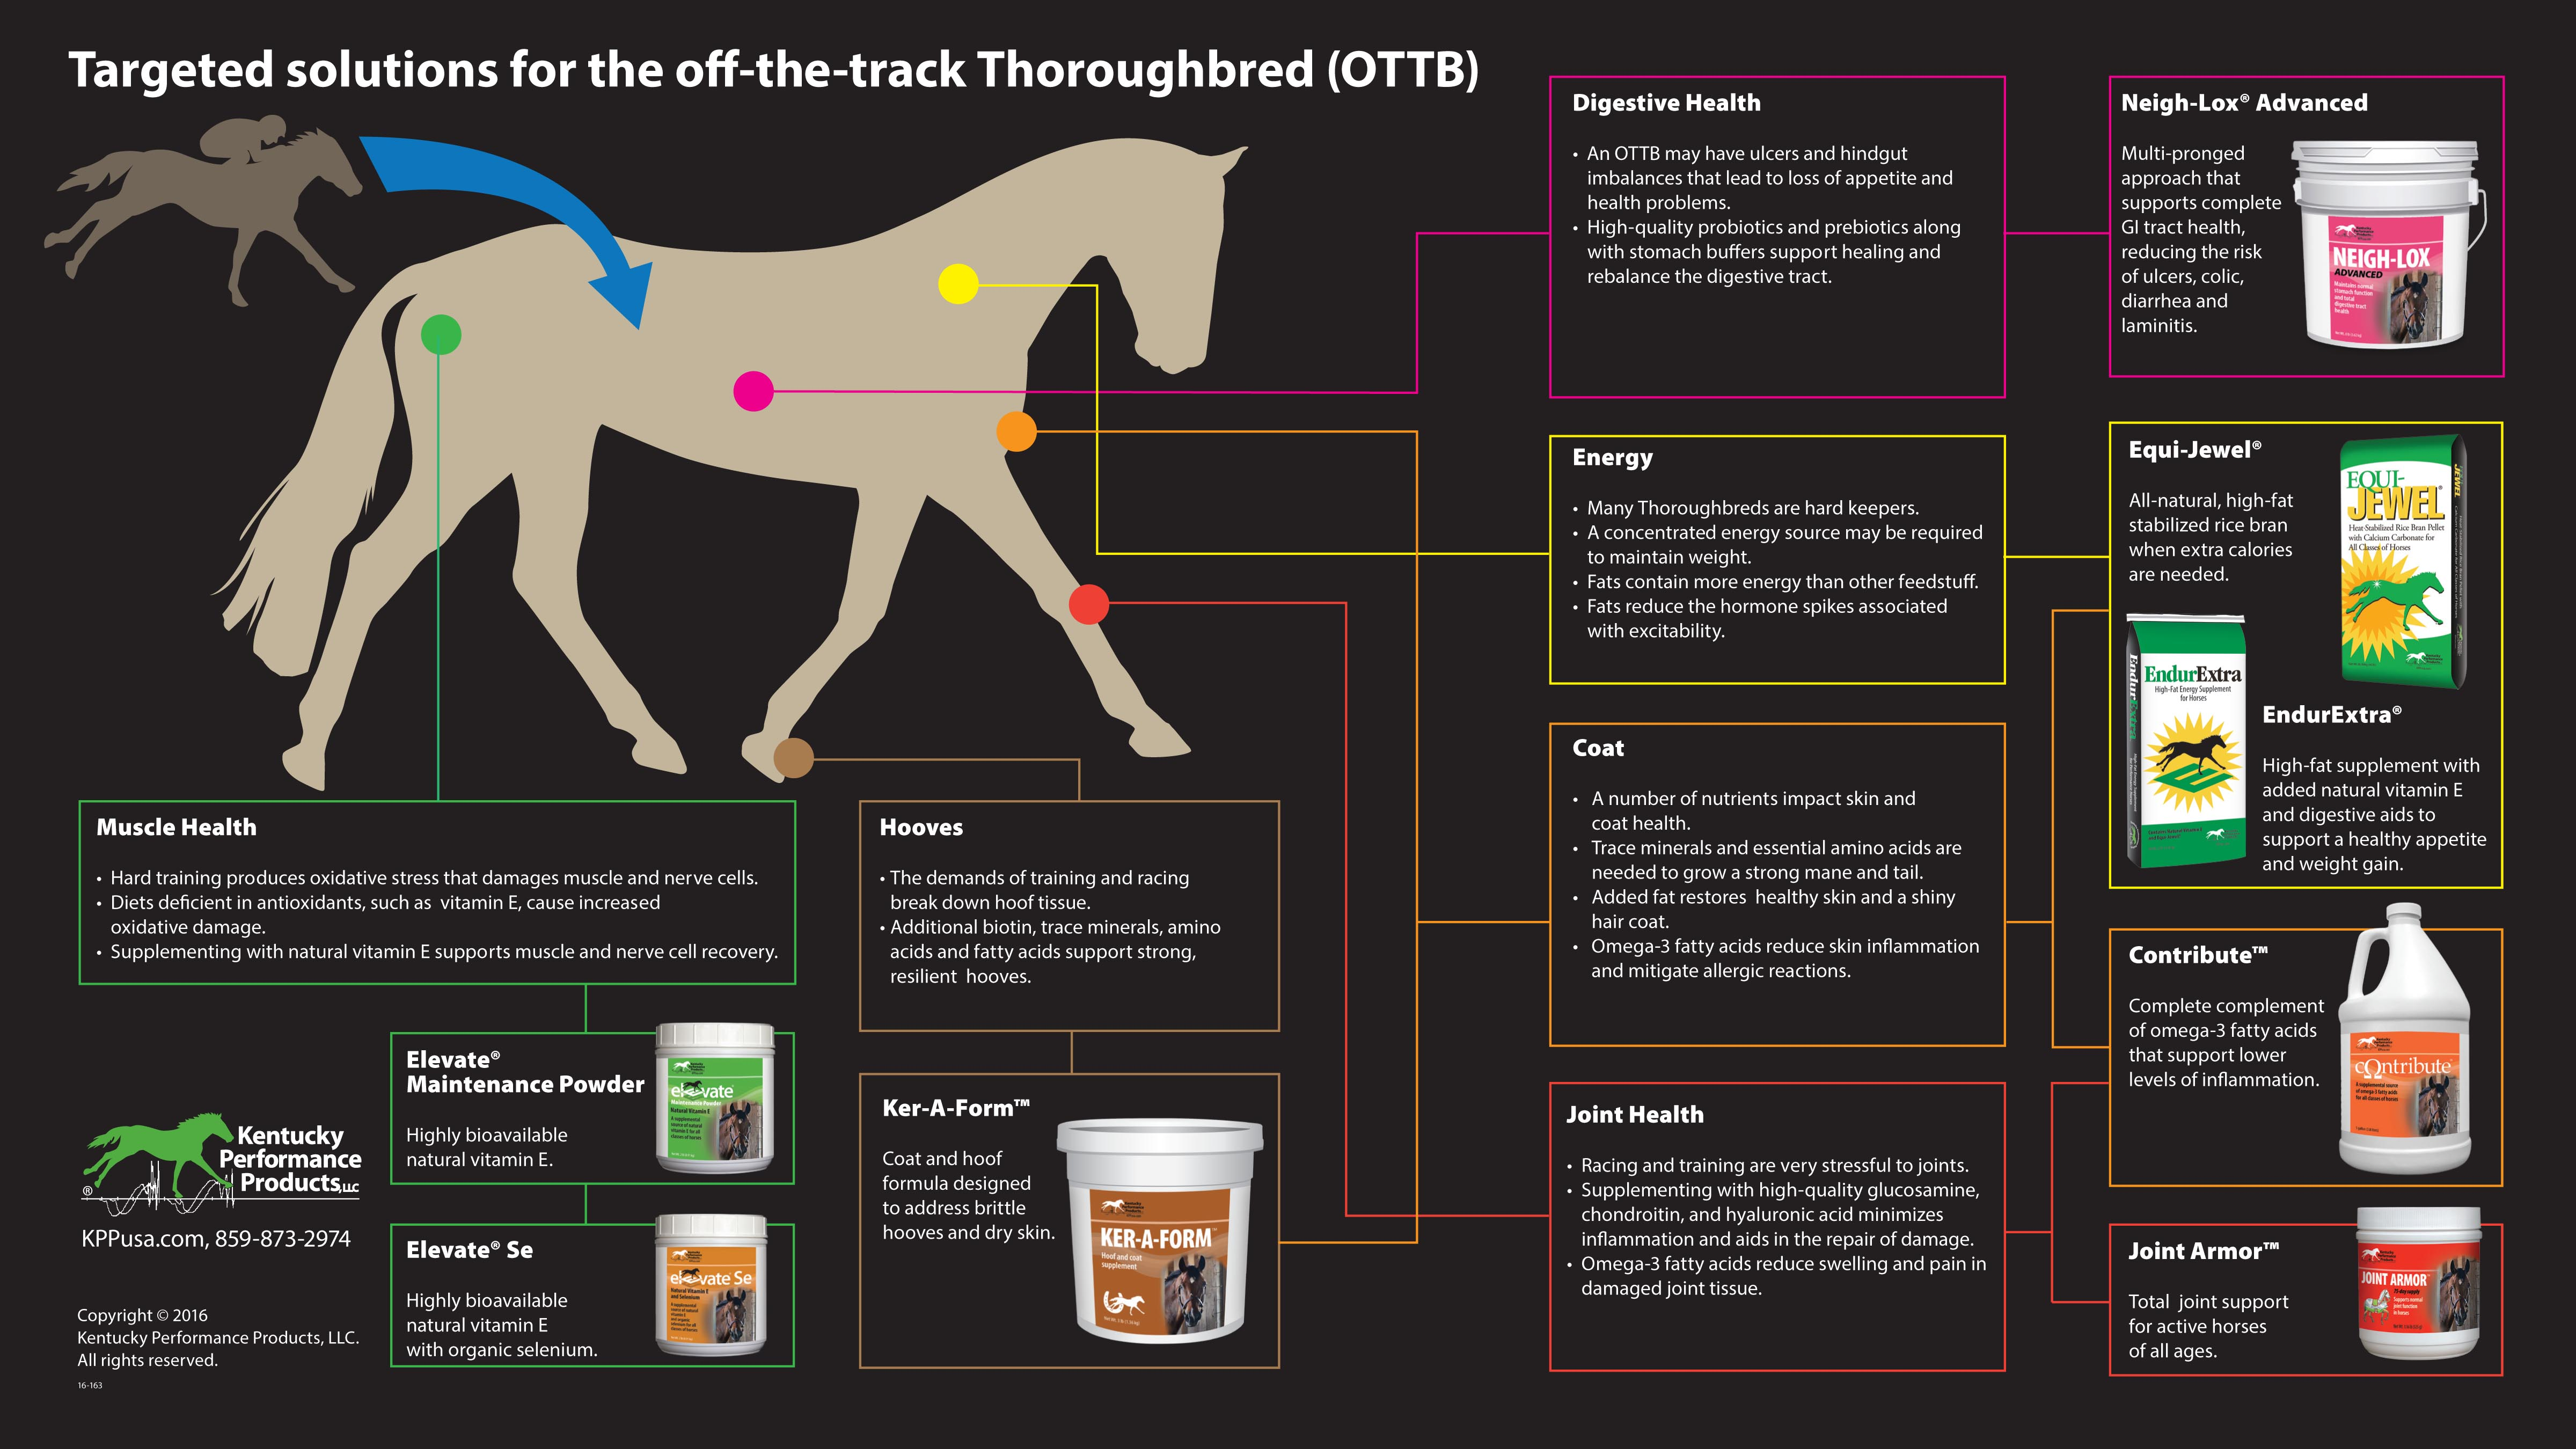 16-162-Targeted-solutions-for-off-the-track-thoroughbreds